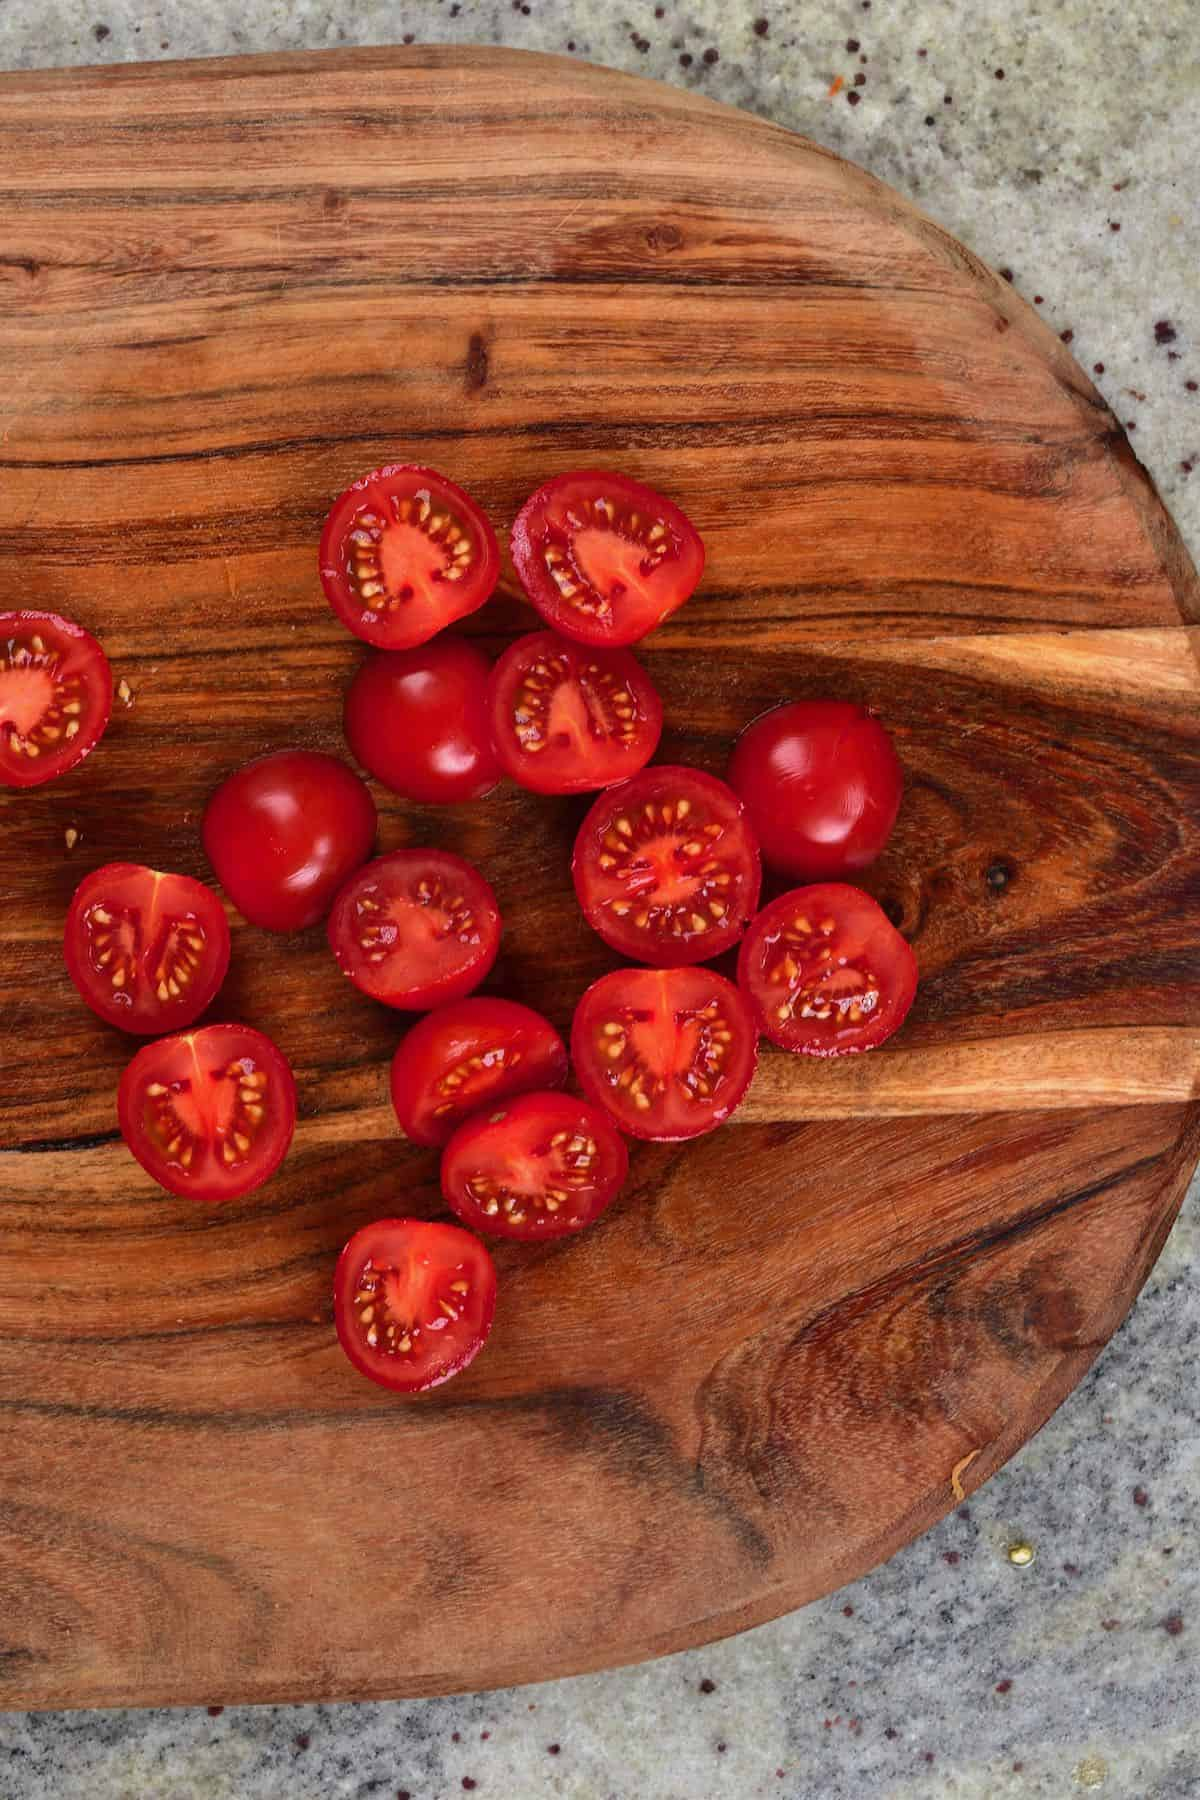 Halved tomatoes on a cutting board